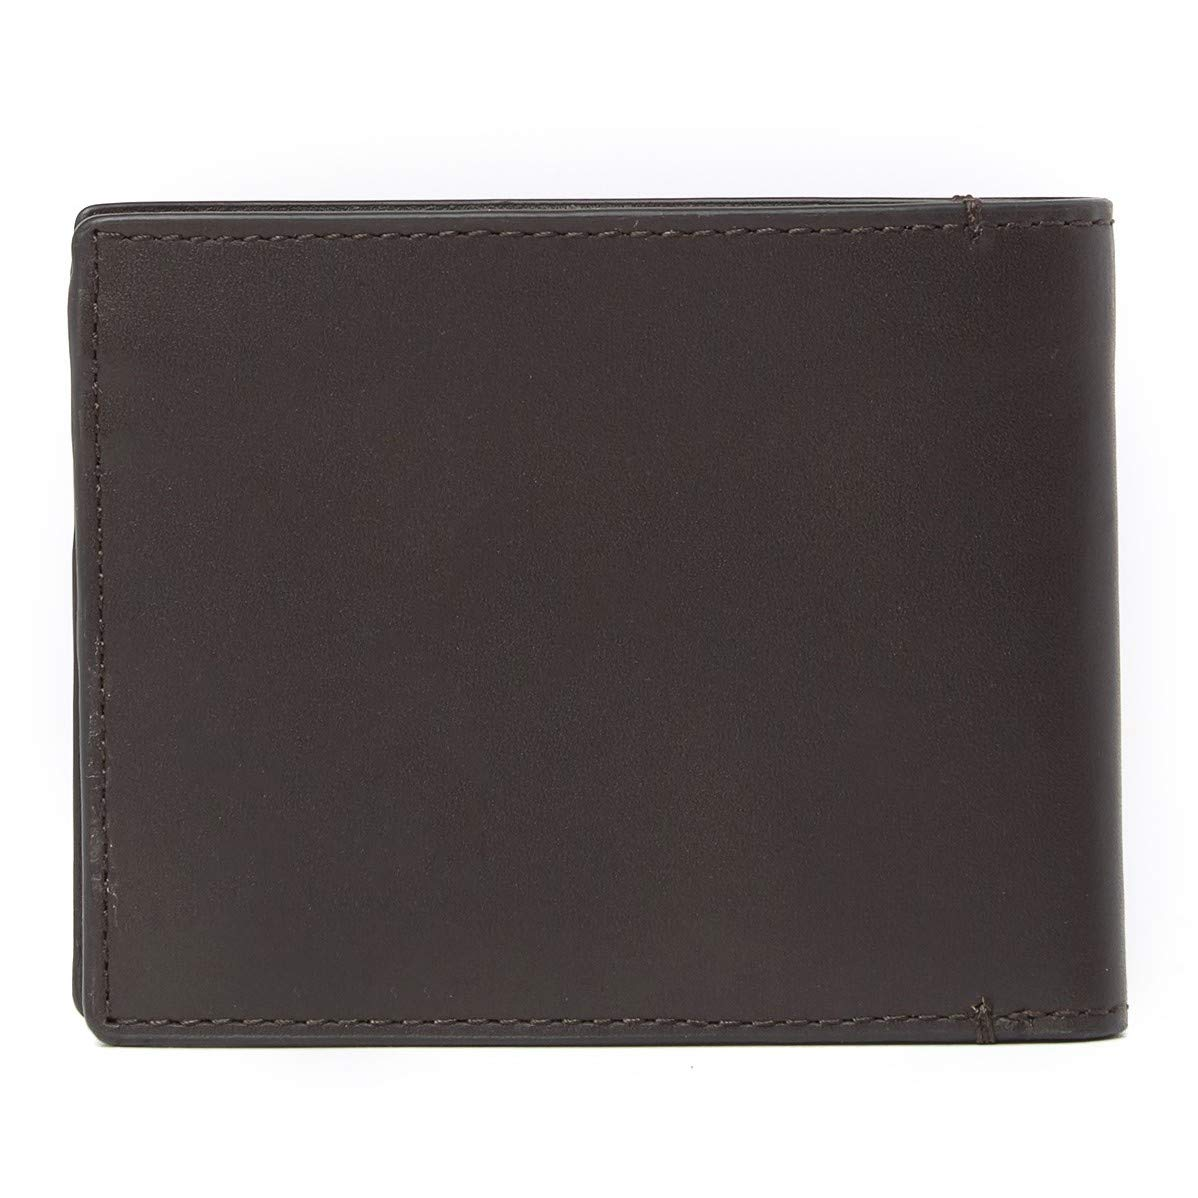 Cole Haan Mens Smooth Leather Bifold Wallet